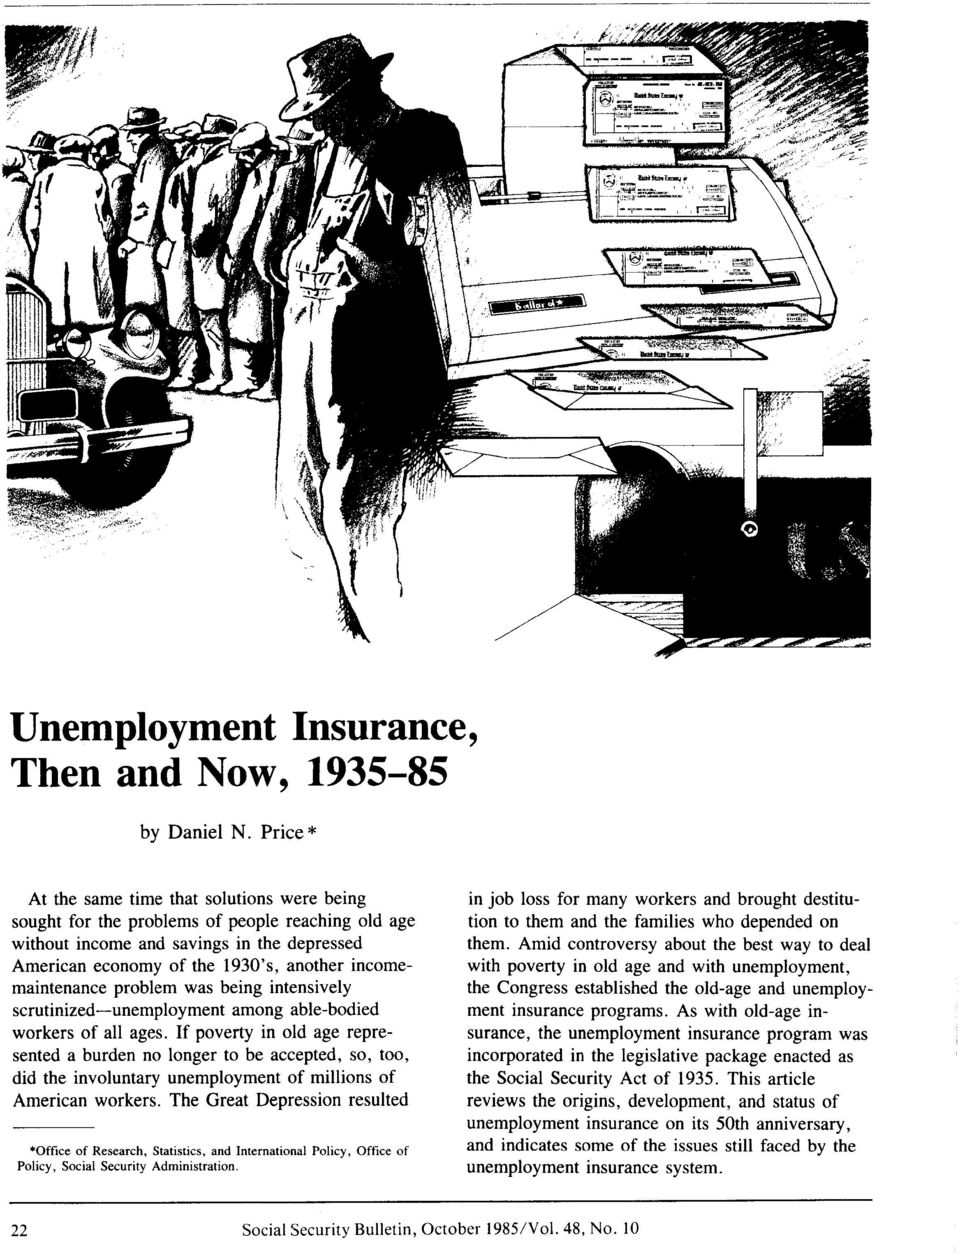 incomemaintenance problem was being intensively scrutinized-unemployment among able-bodied workers of all ages.